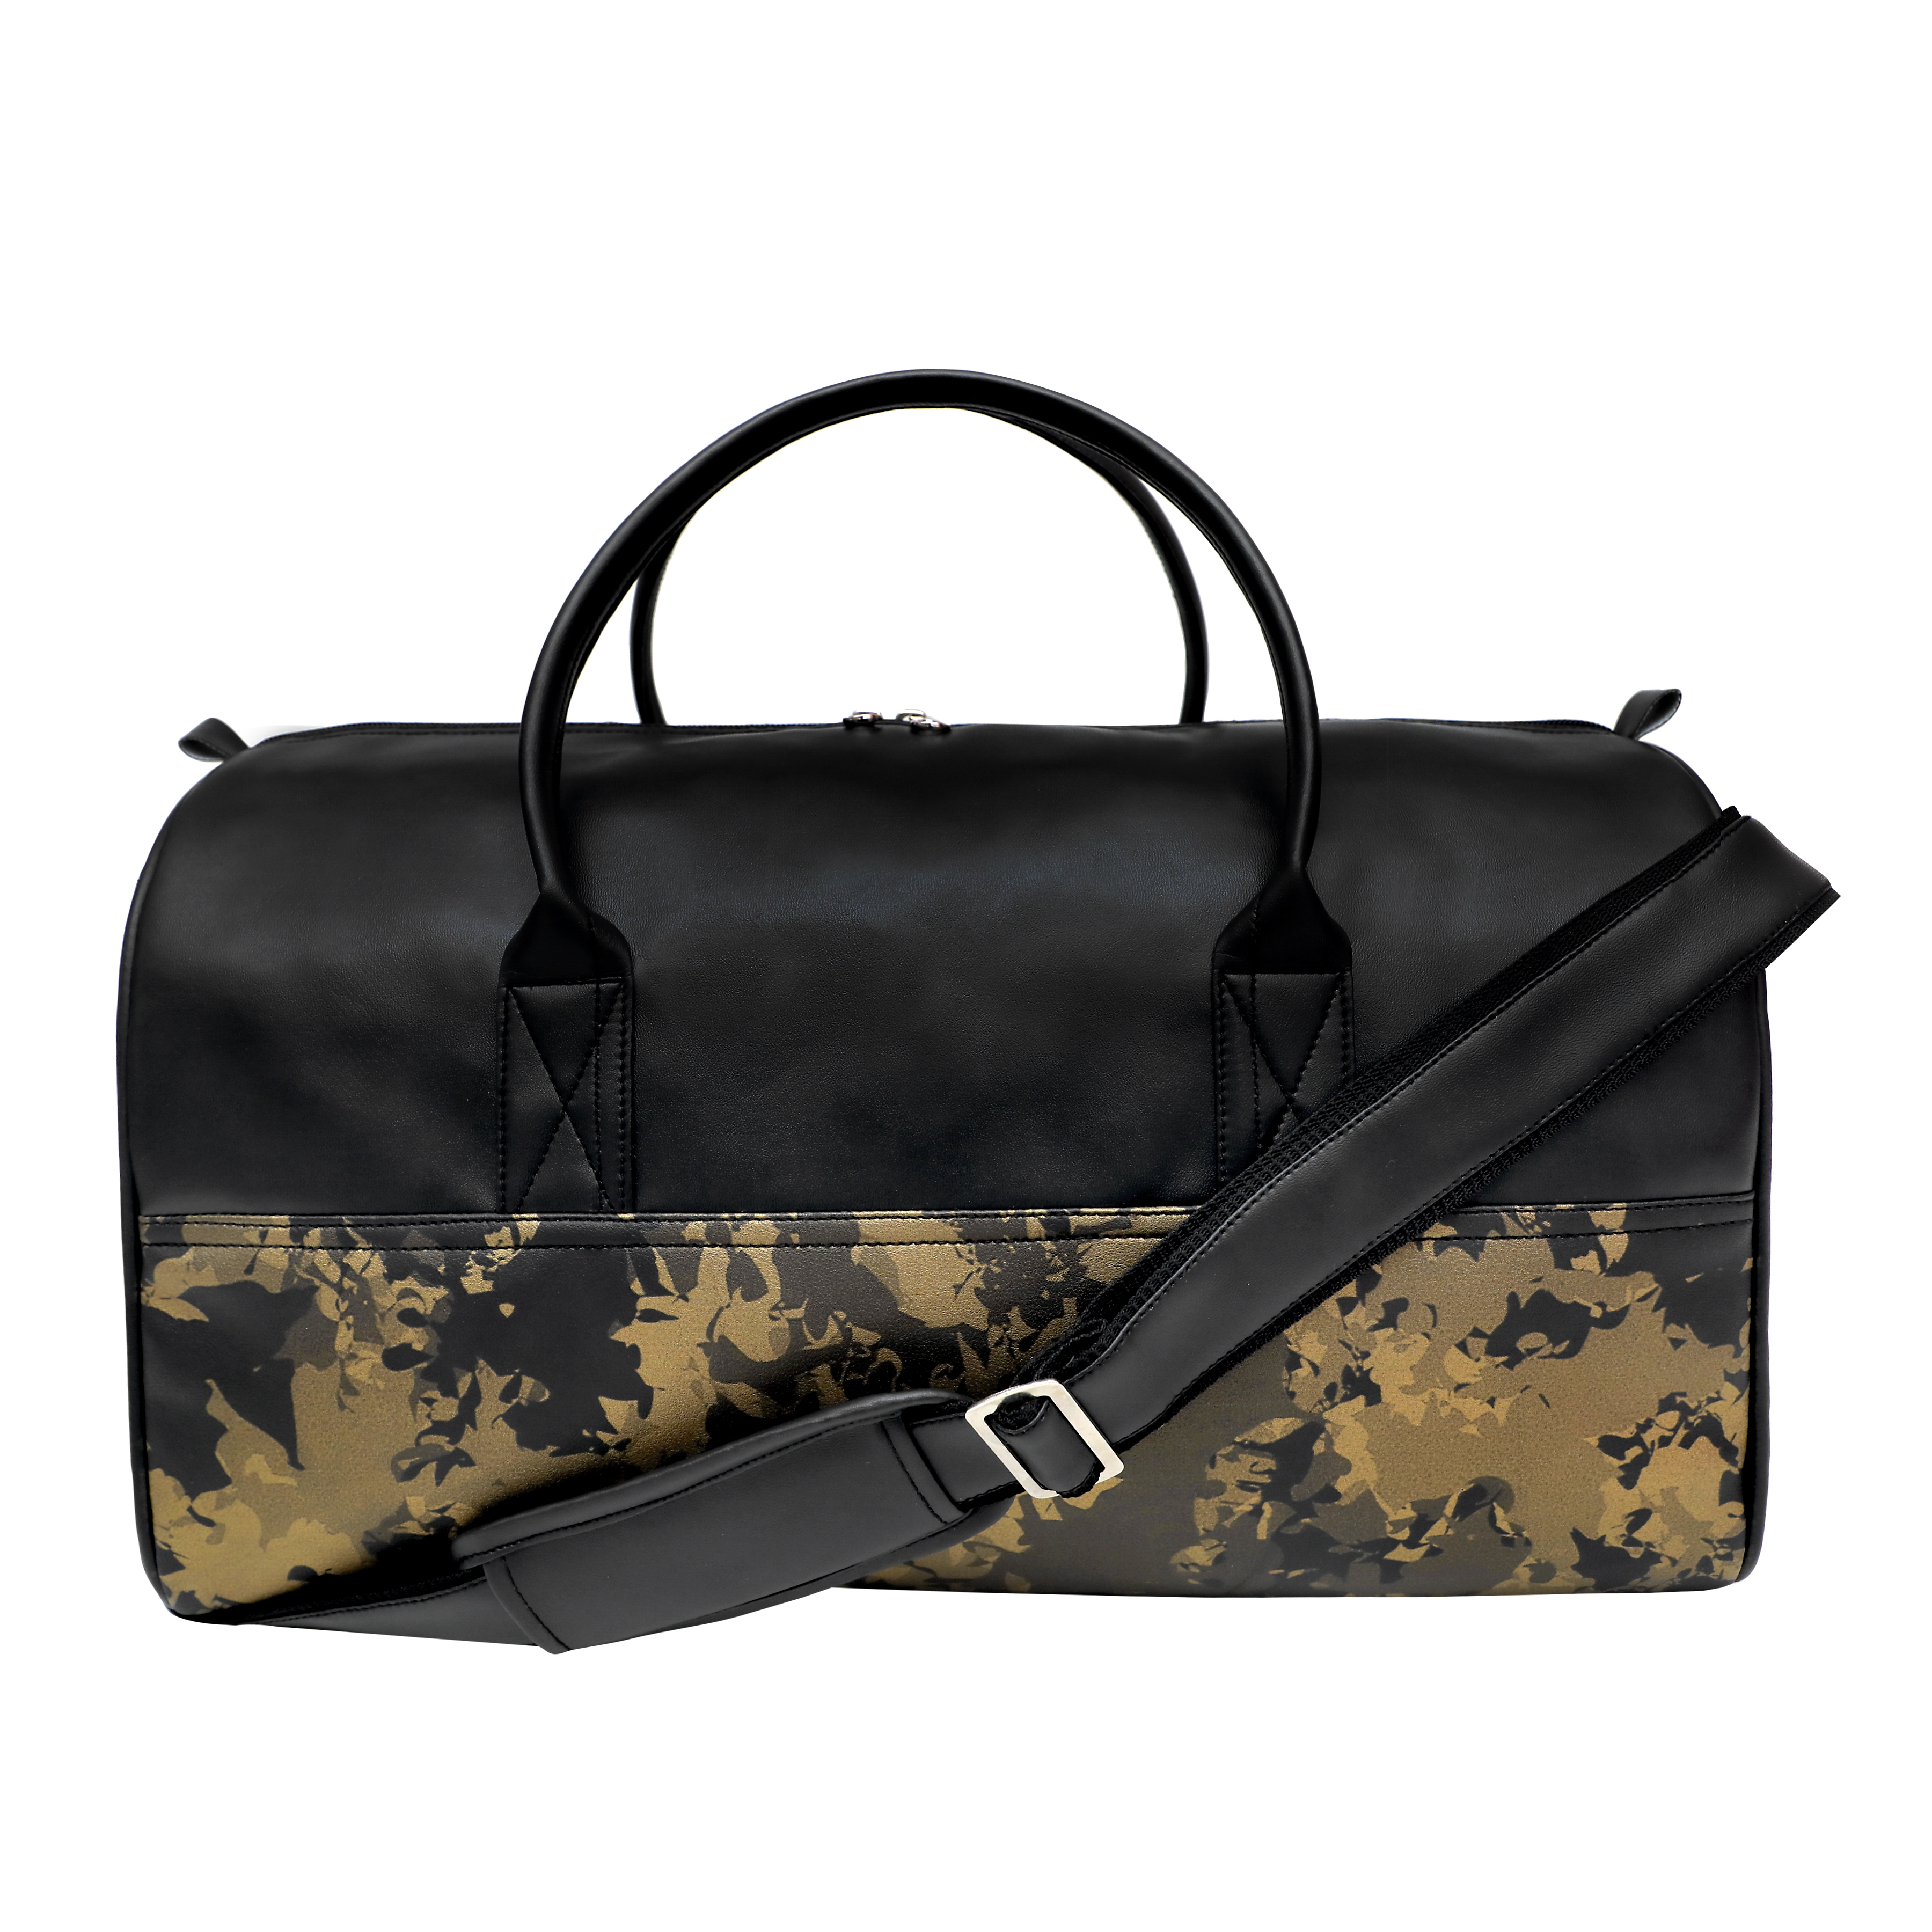 Textured Leatherette Duffle Bag